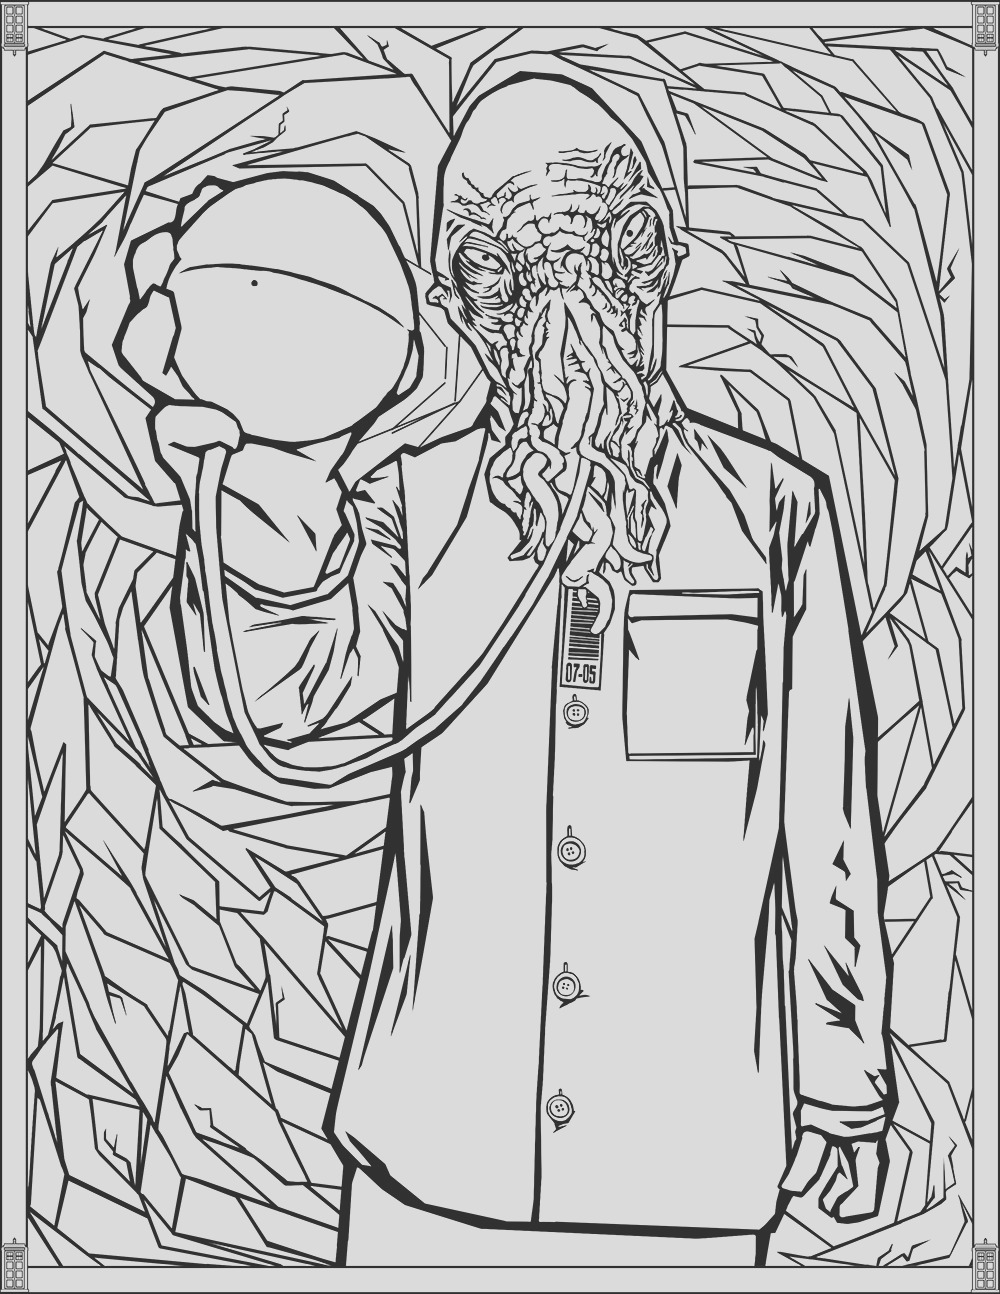 image=tv series Doctor Who Coloring Pages Ood 1